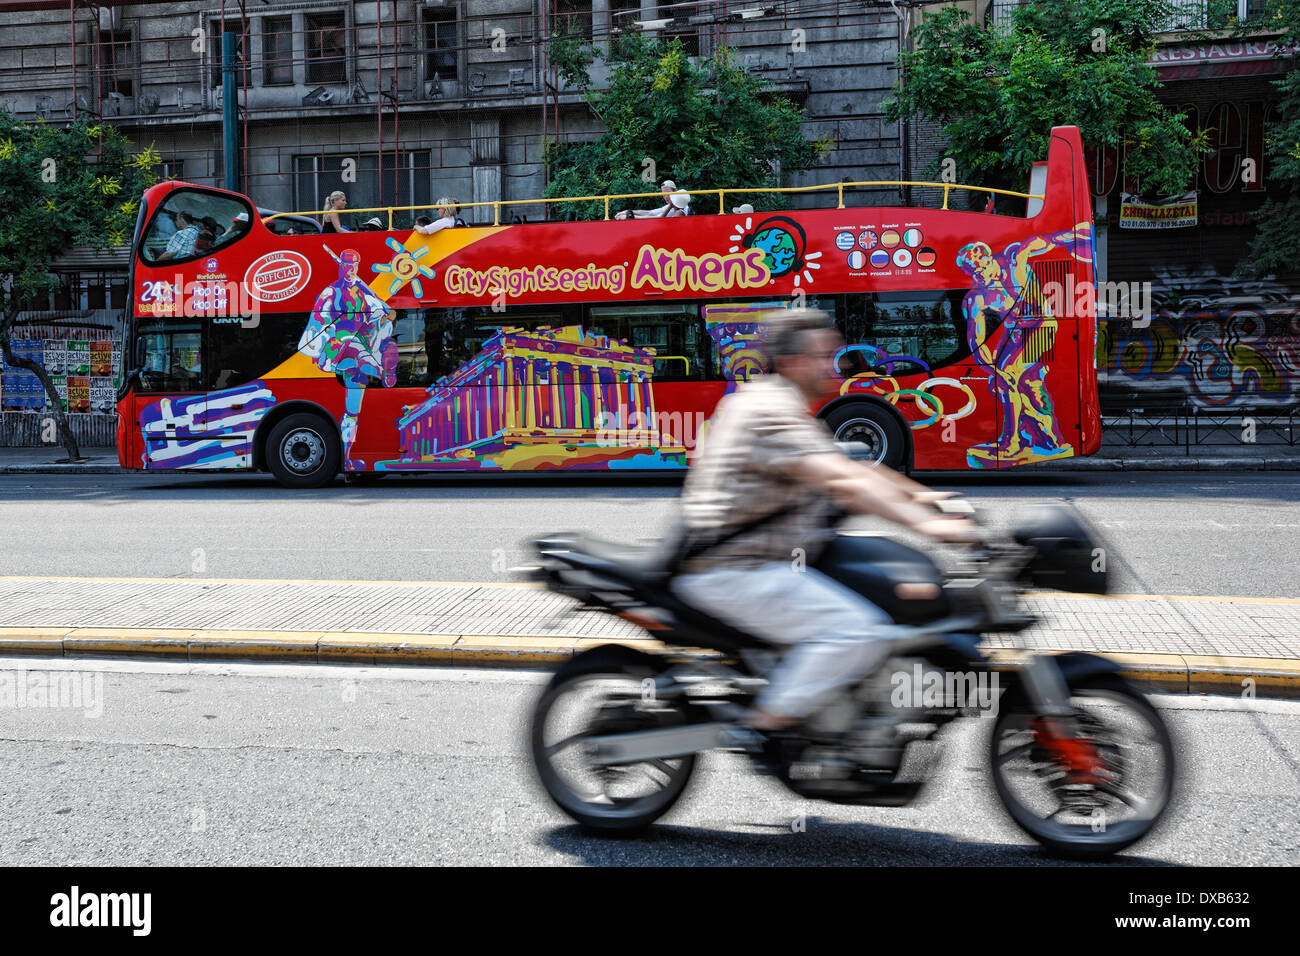 The tour bus for the sightseeing of Athens, Greece - Stock Image